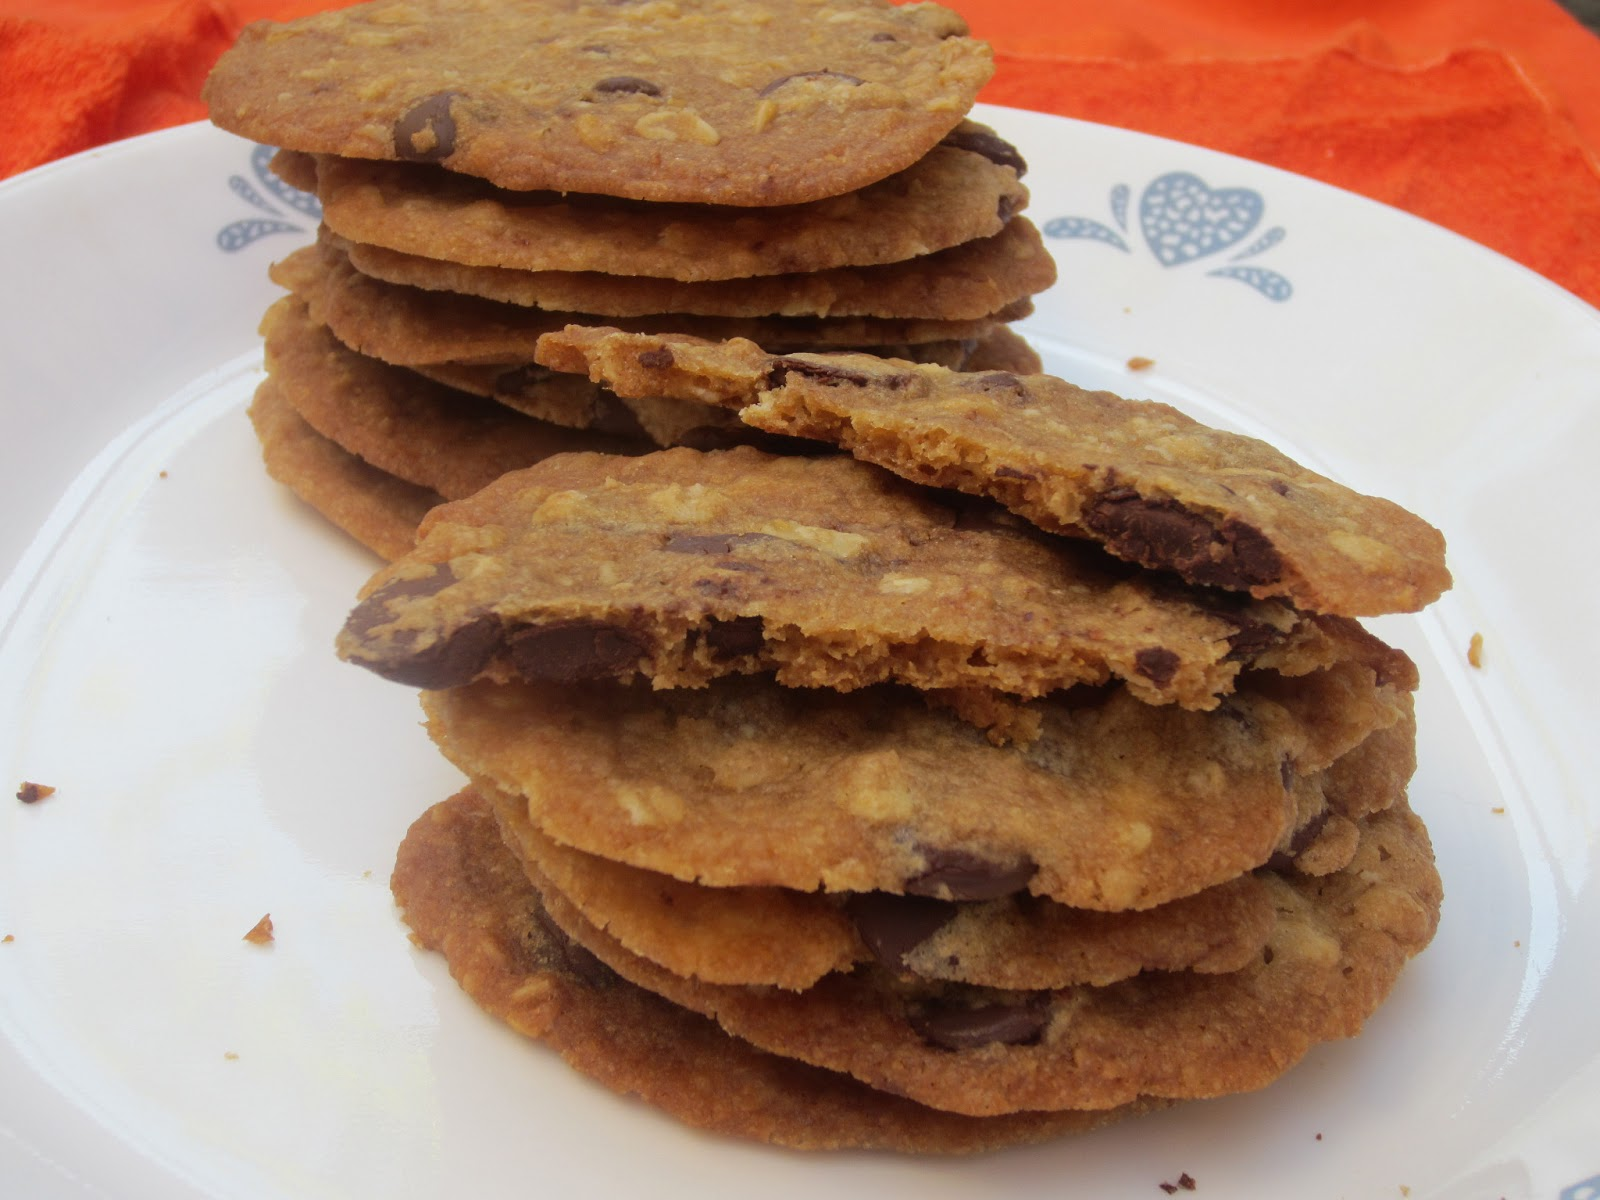 Crispy chocolate chip oatmeal cookies recipe